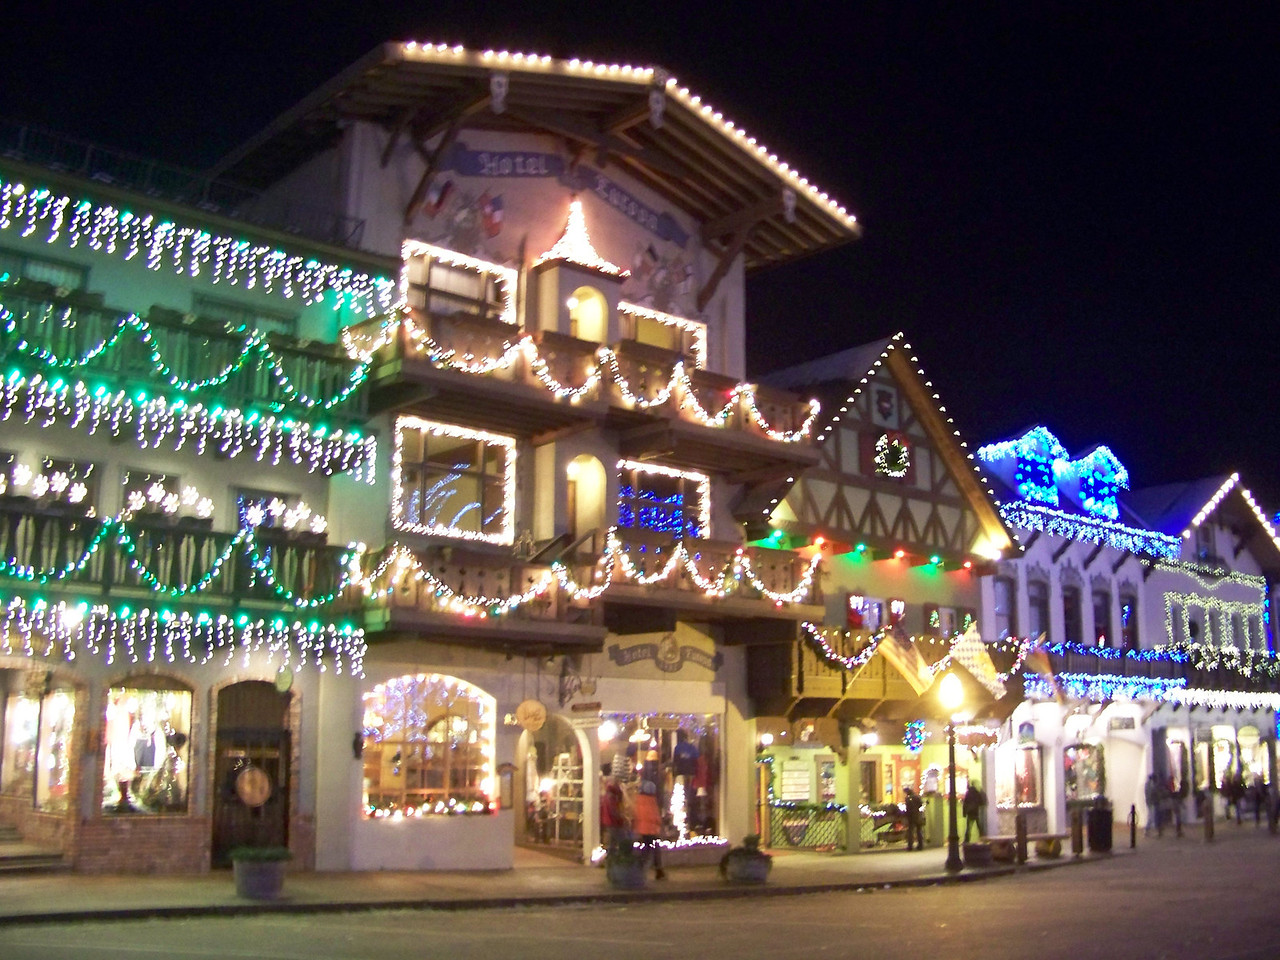 """Christmas lights on the shops along Front Street. [Leavenworth, WA - December 2013 - <b><a target=""""_new"""" href=""""http://youtu.be/NqCqDCOY_tc"""">Watch my video here</a></b>]"""